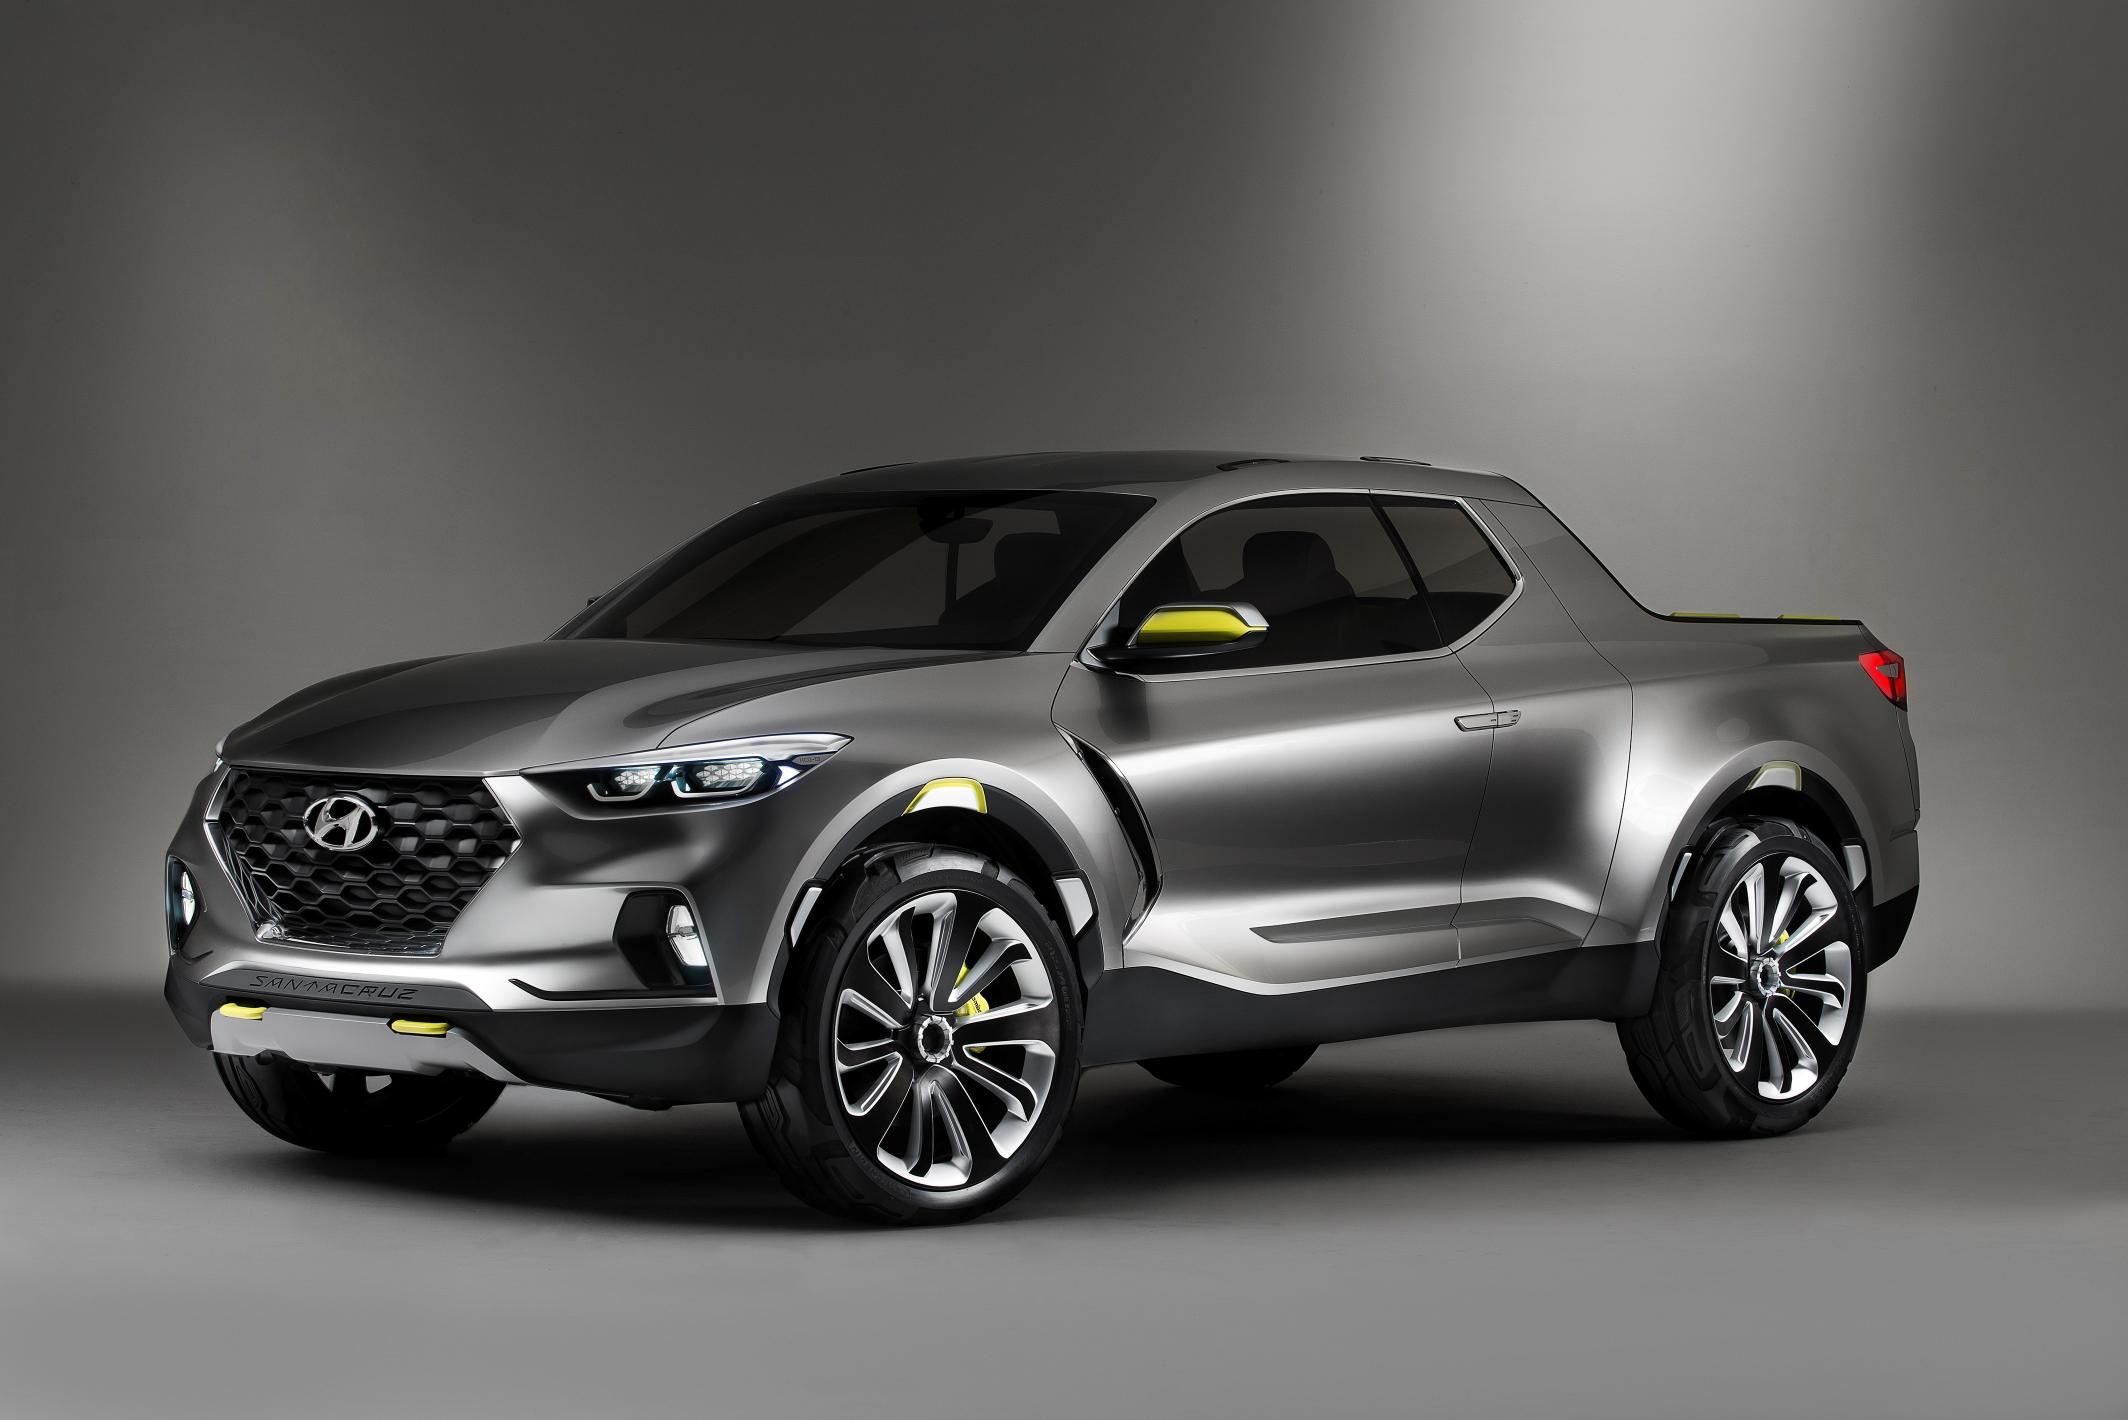 5 Crossover-SUV Concepts That Will Turn Into Cash Cows When Put in Production - autoevolution